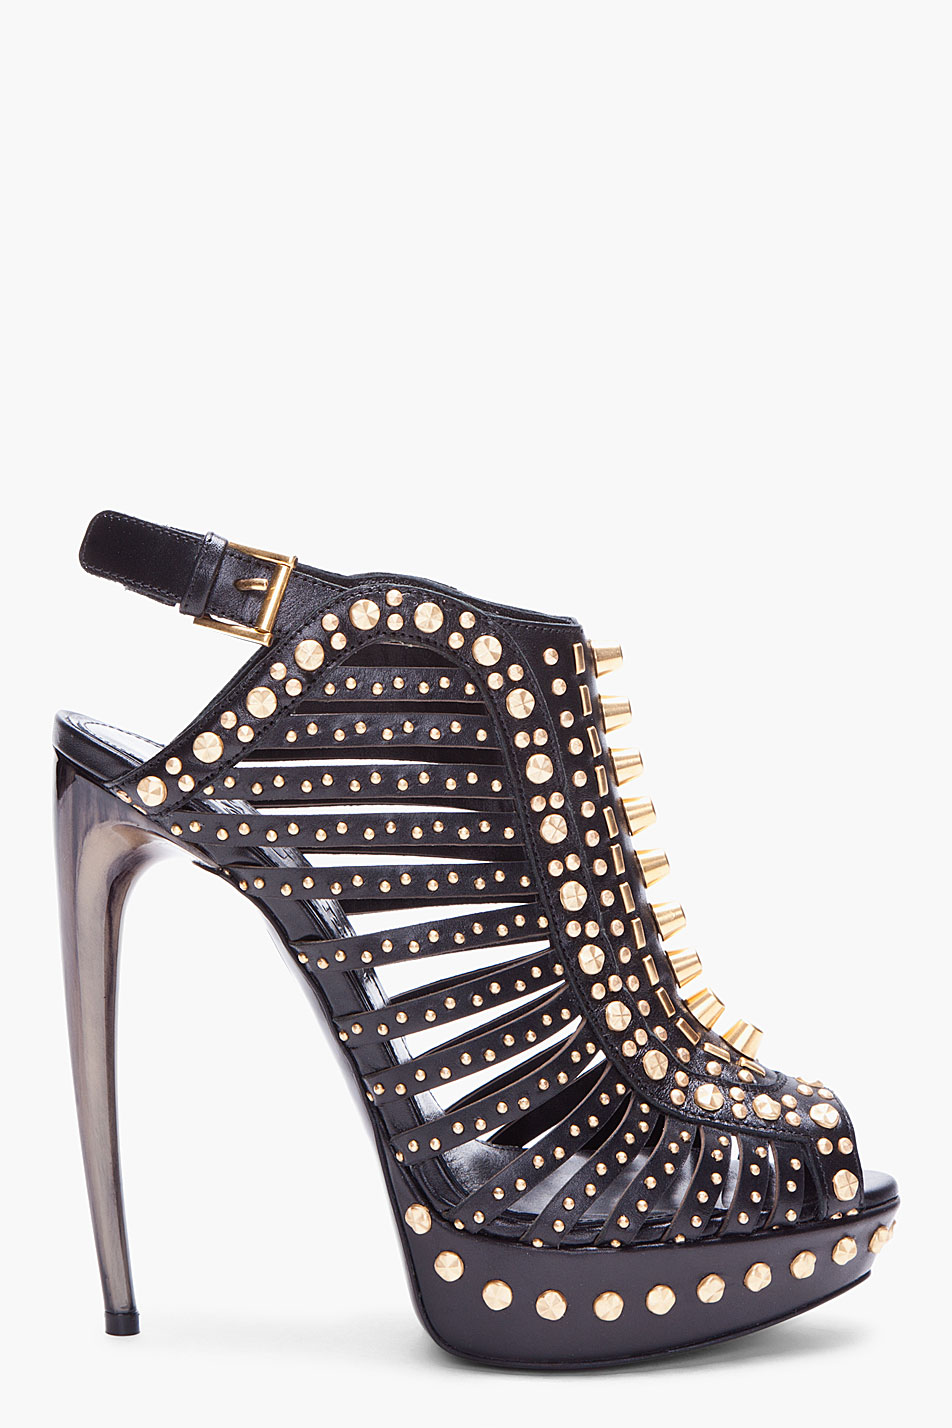 Alexander mcqueen Black Studded Heels in Black | Lyst